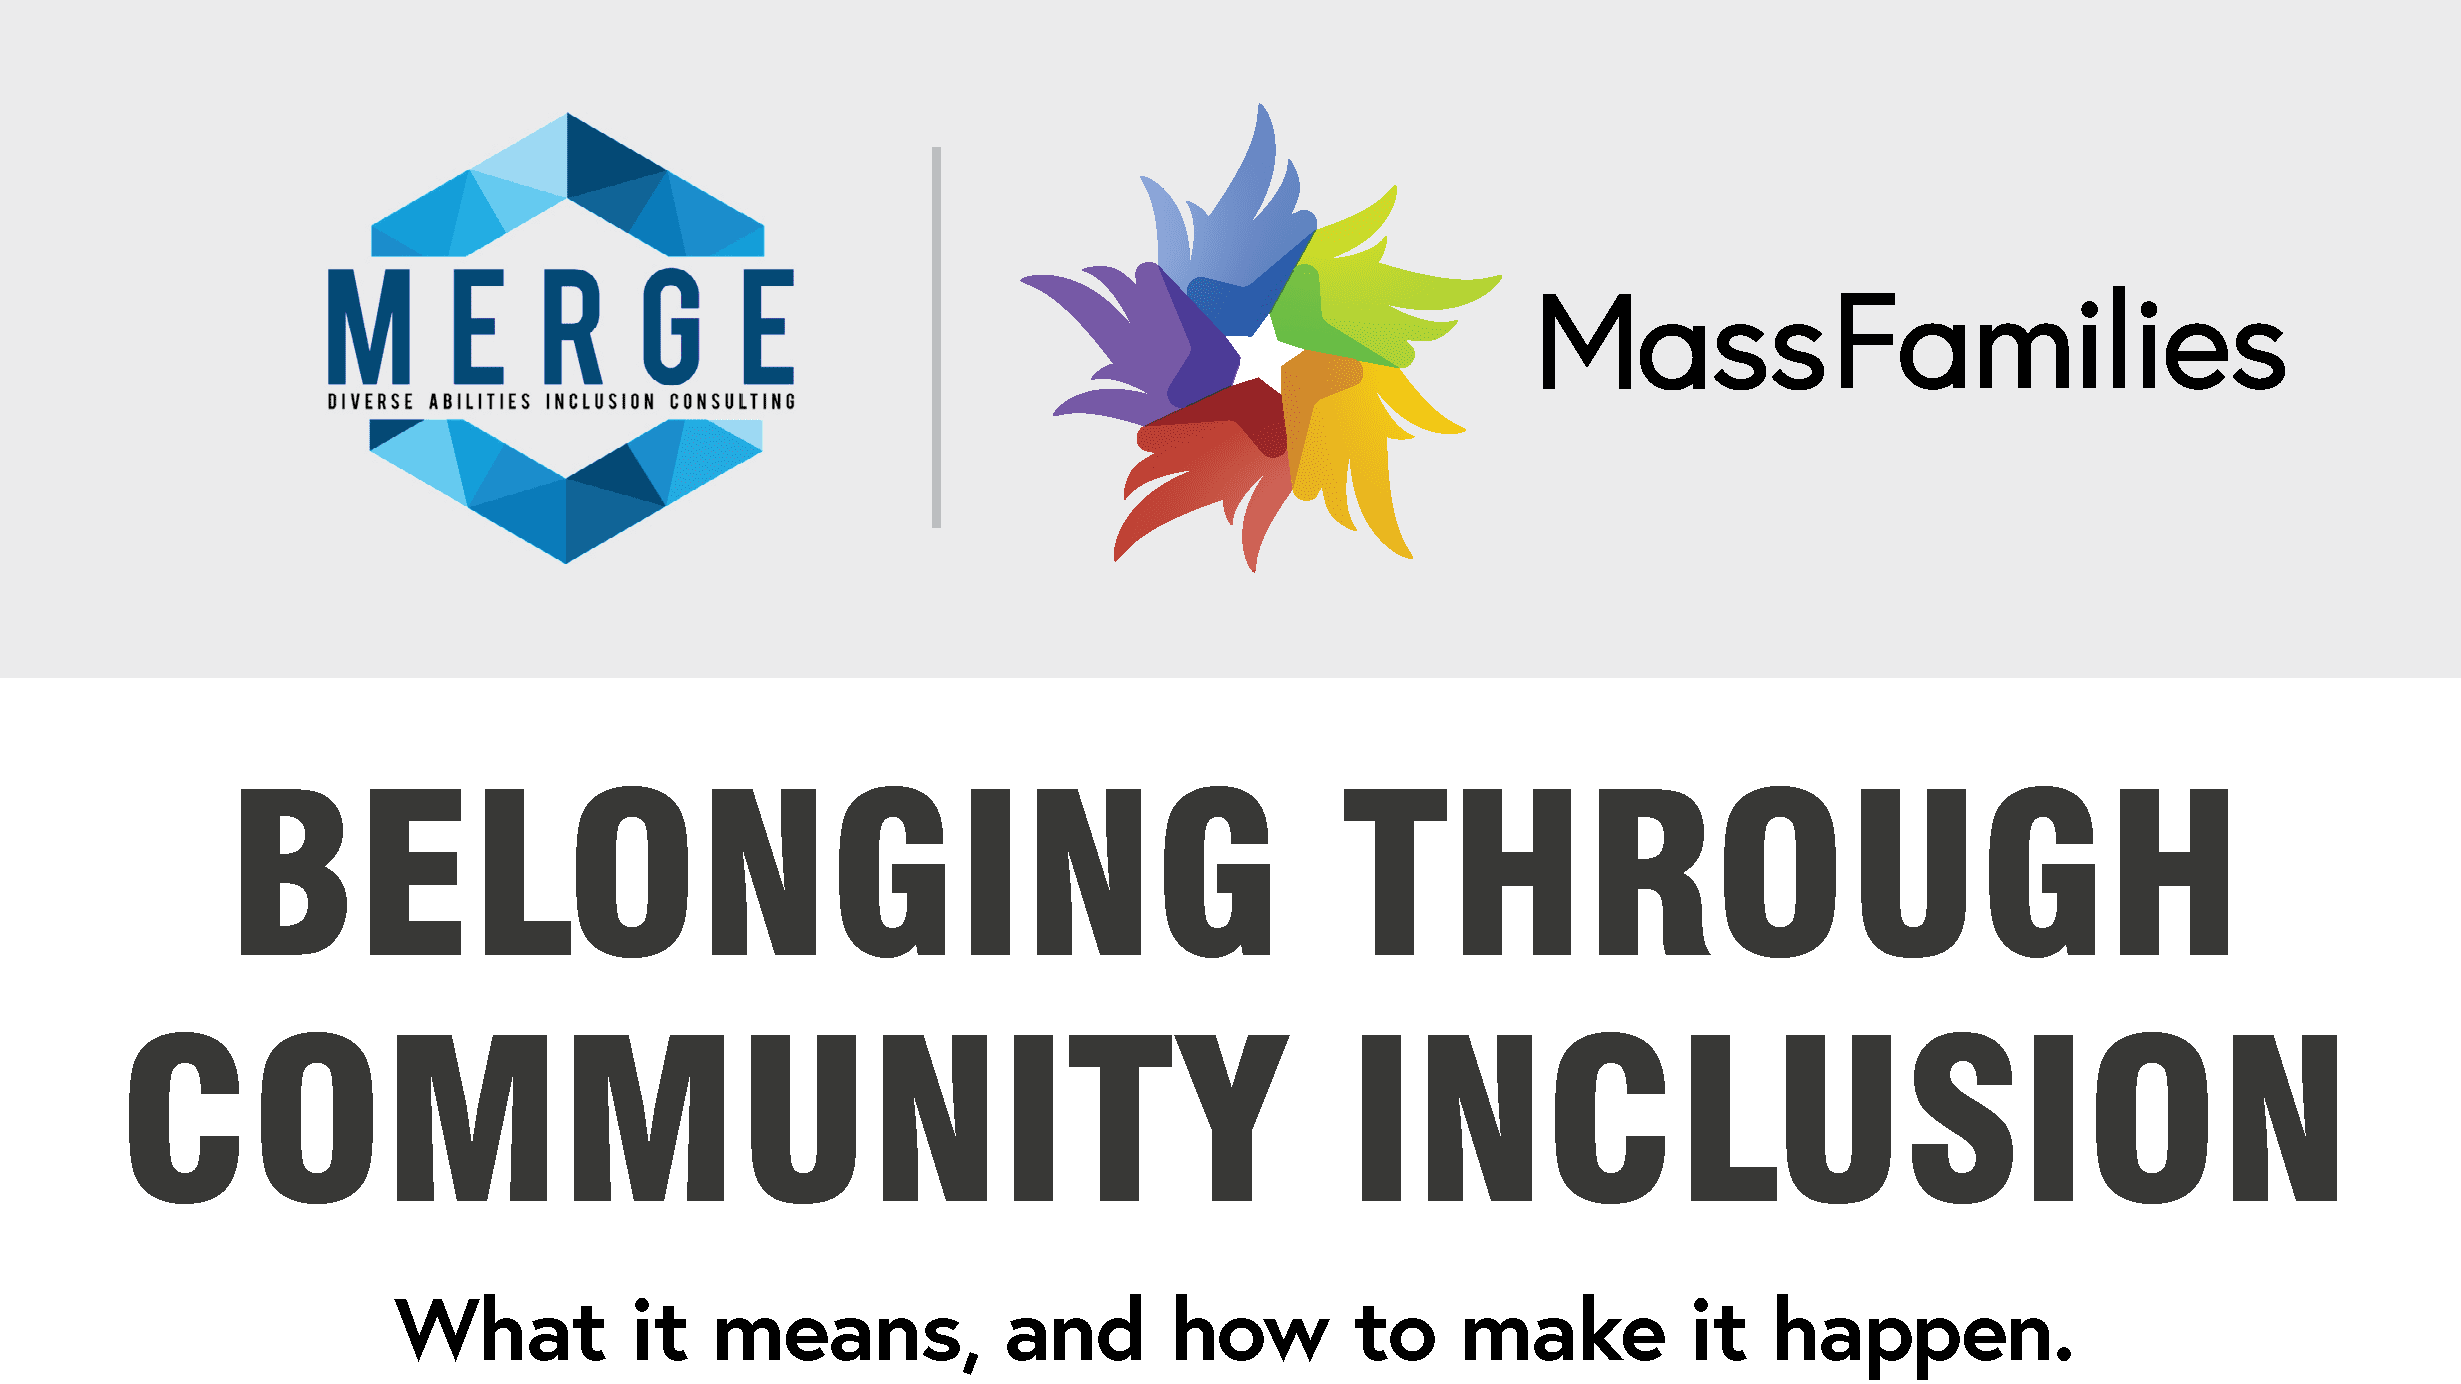 Belonging Through Community Inclusion